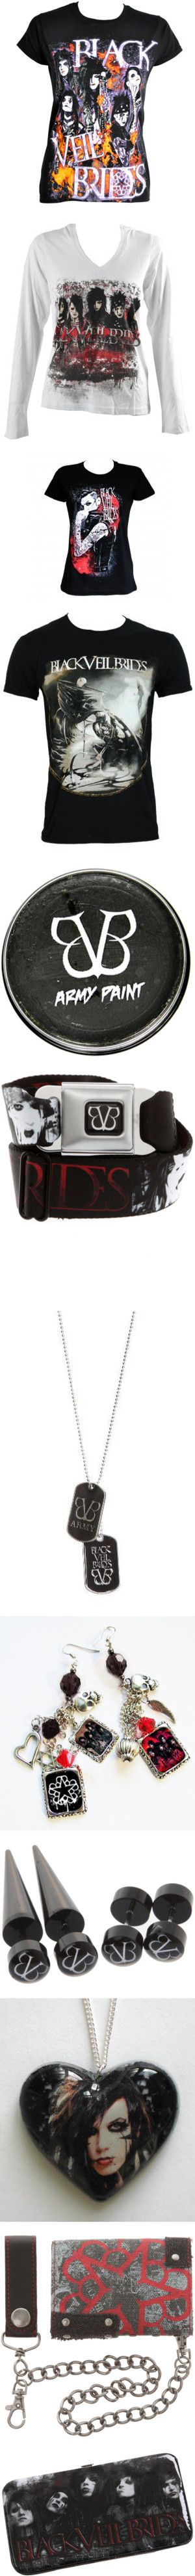 """""""Black Veil Brides Merch"""" by onedirectionlover99-872 ❤ liked on Polyvore"""